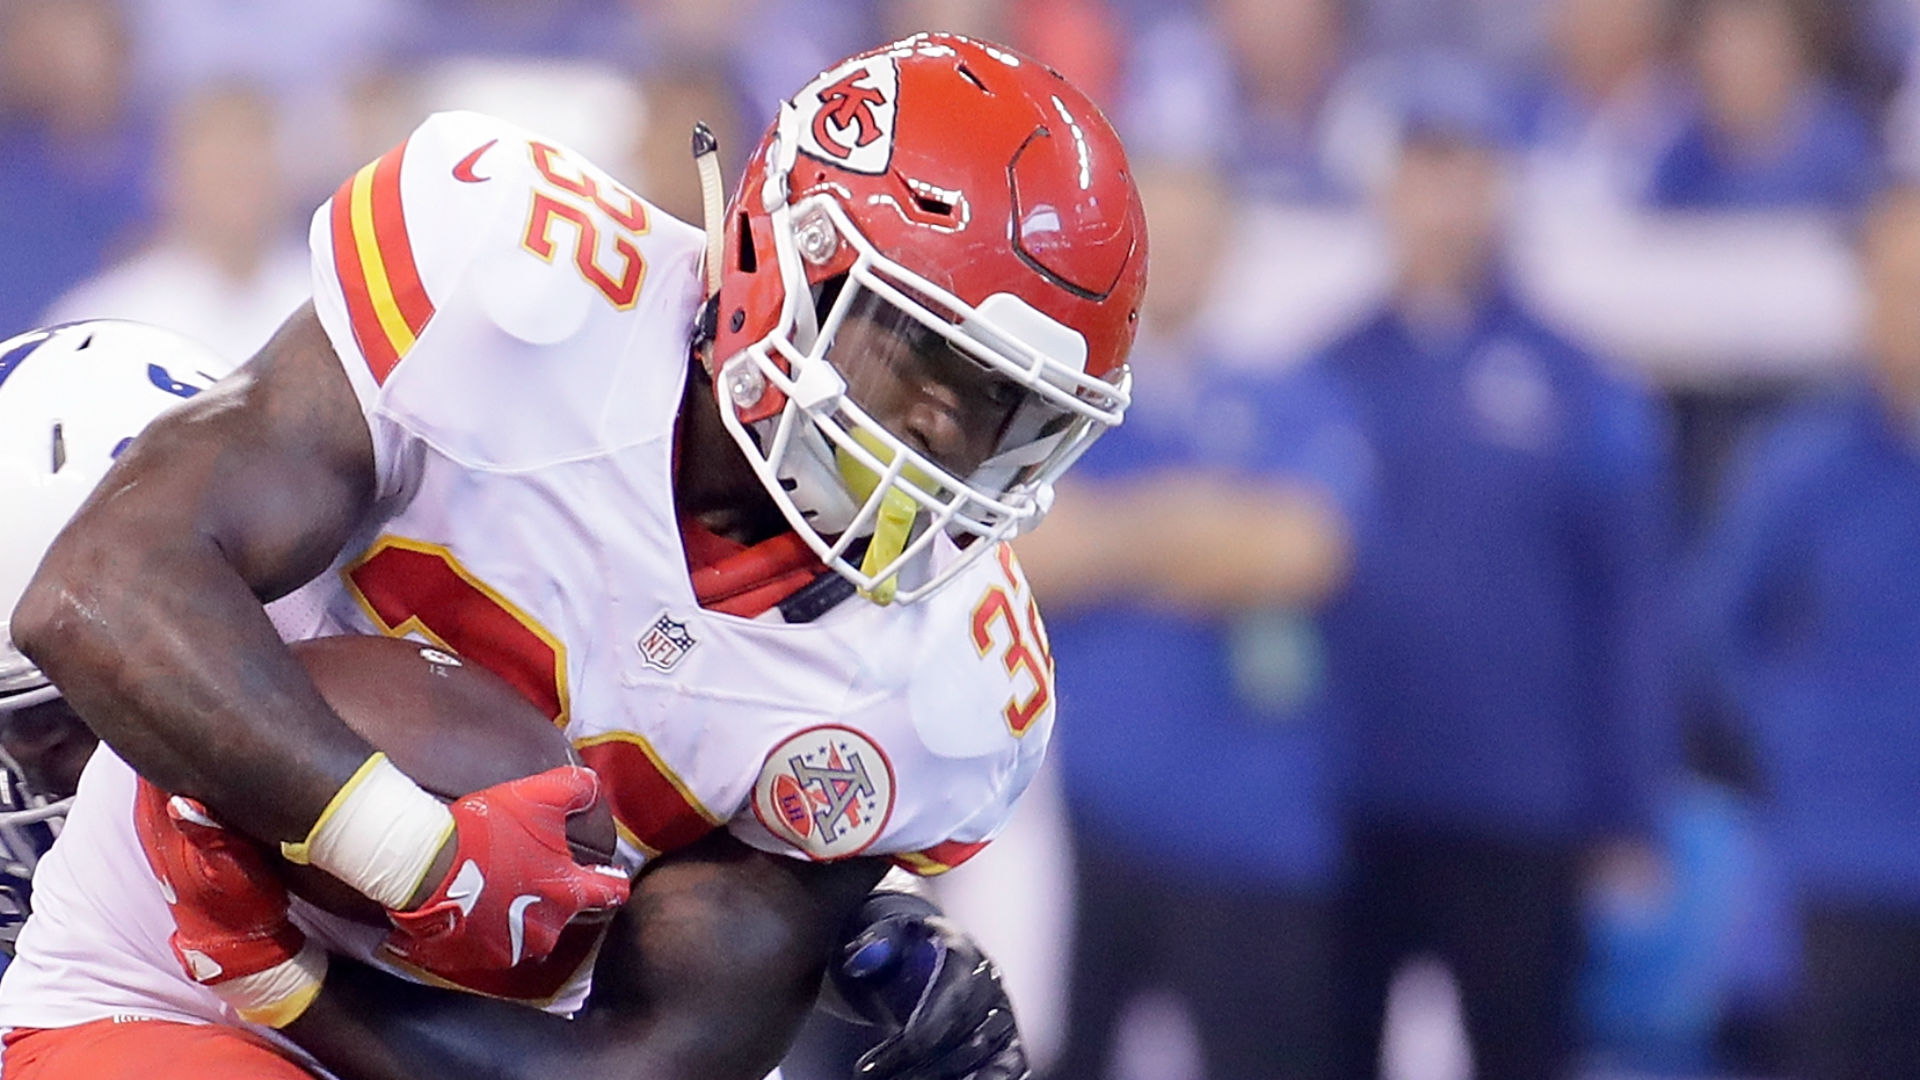 Spencer Ware's injury gives Kareem Hunt chance to lead Chiefs backfield